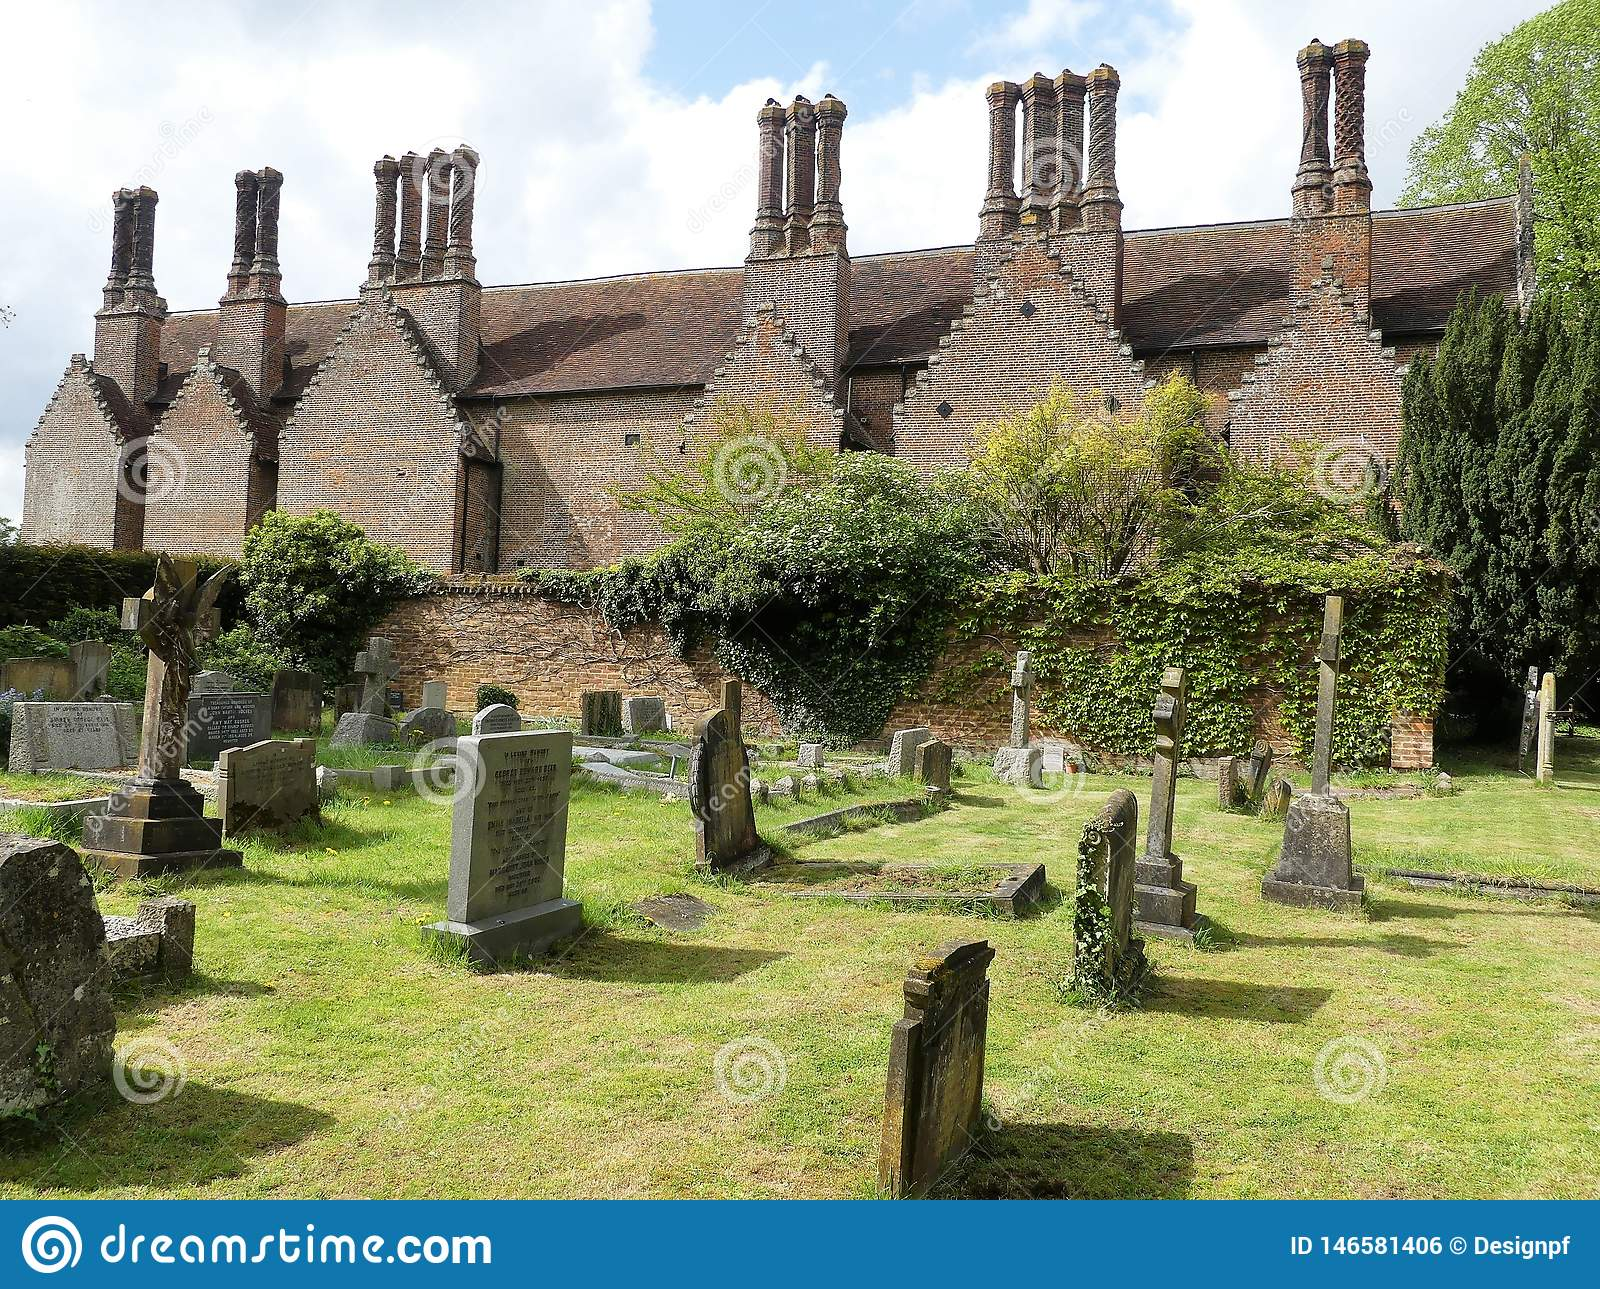 Chenies Manor House, a Tudor Grade I listed building, with church graveyard in foreground